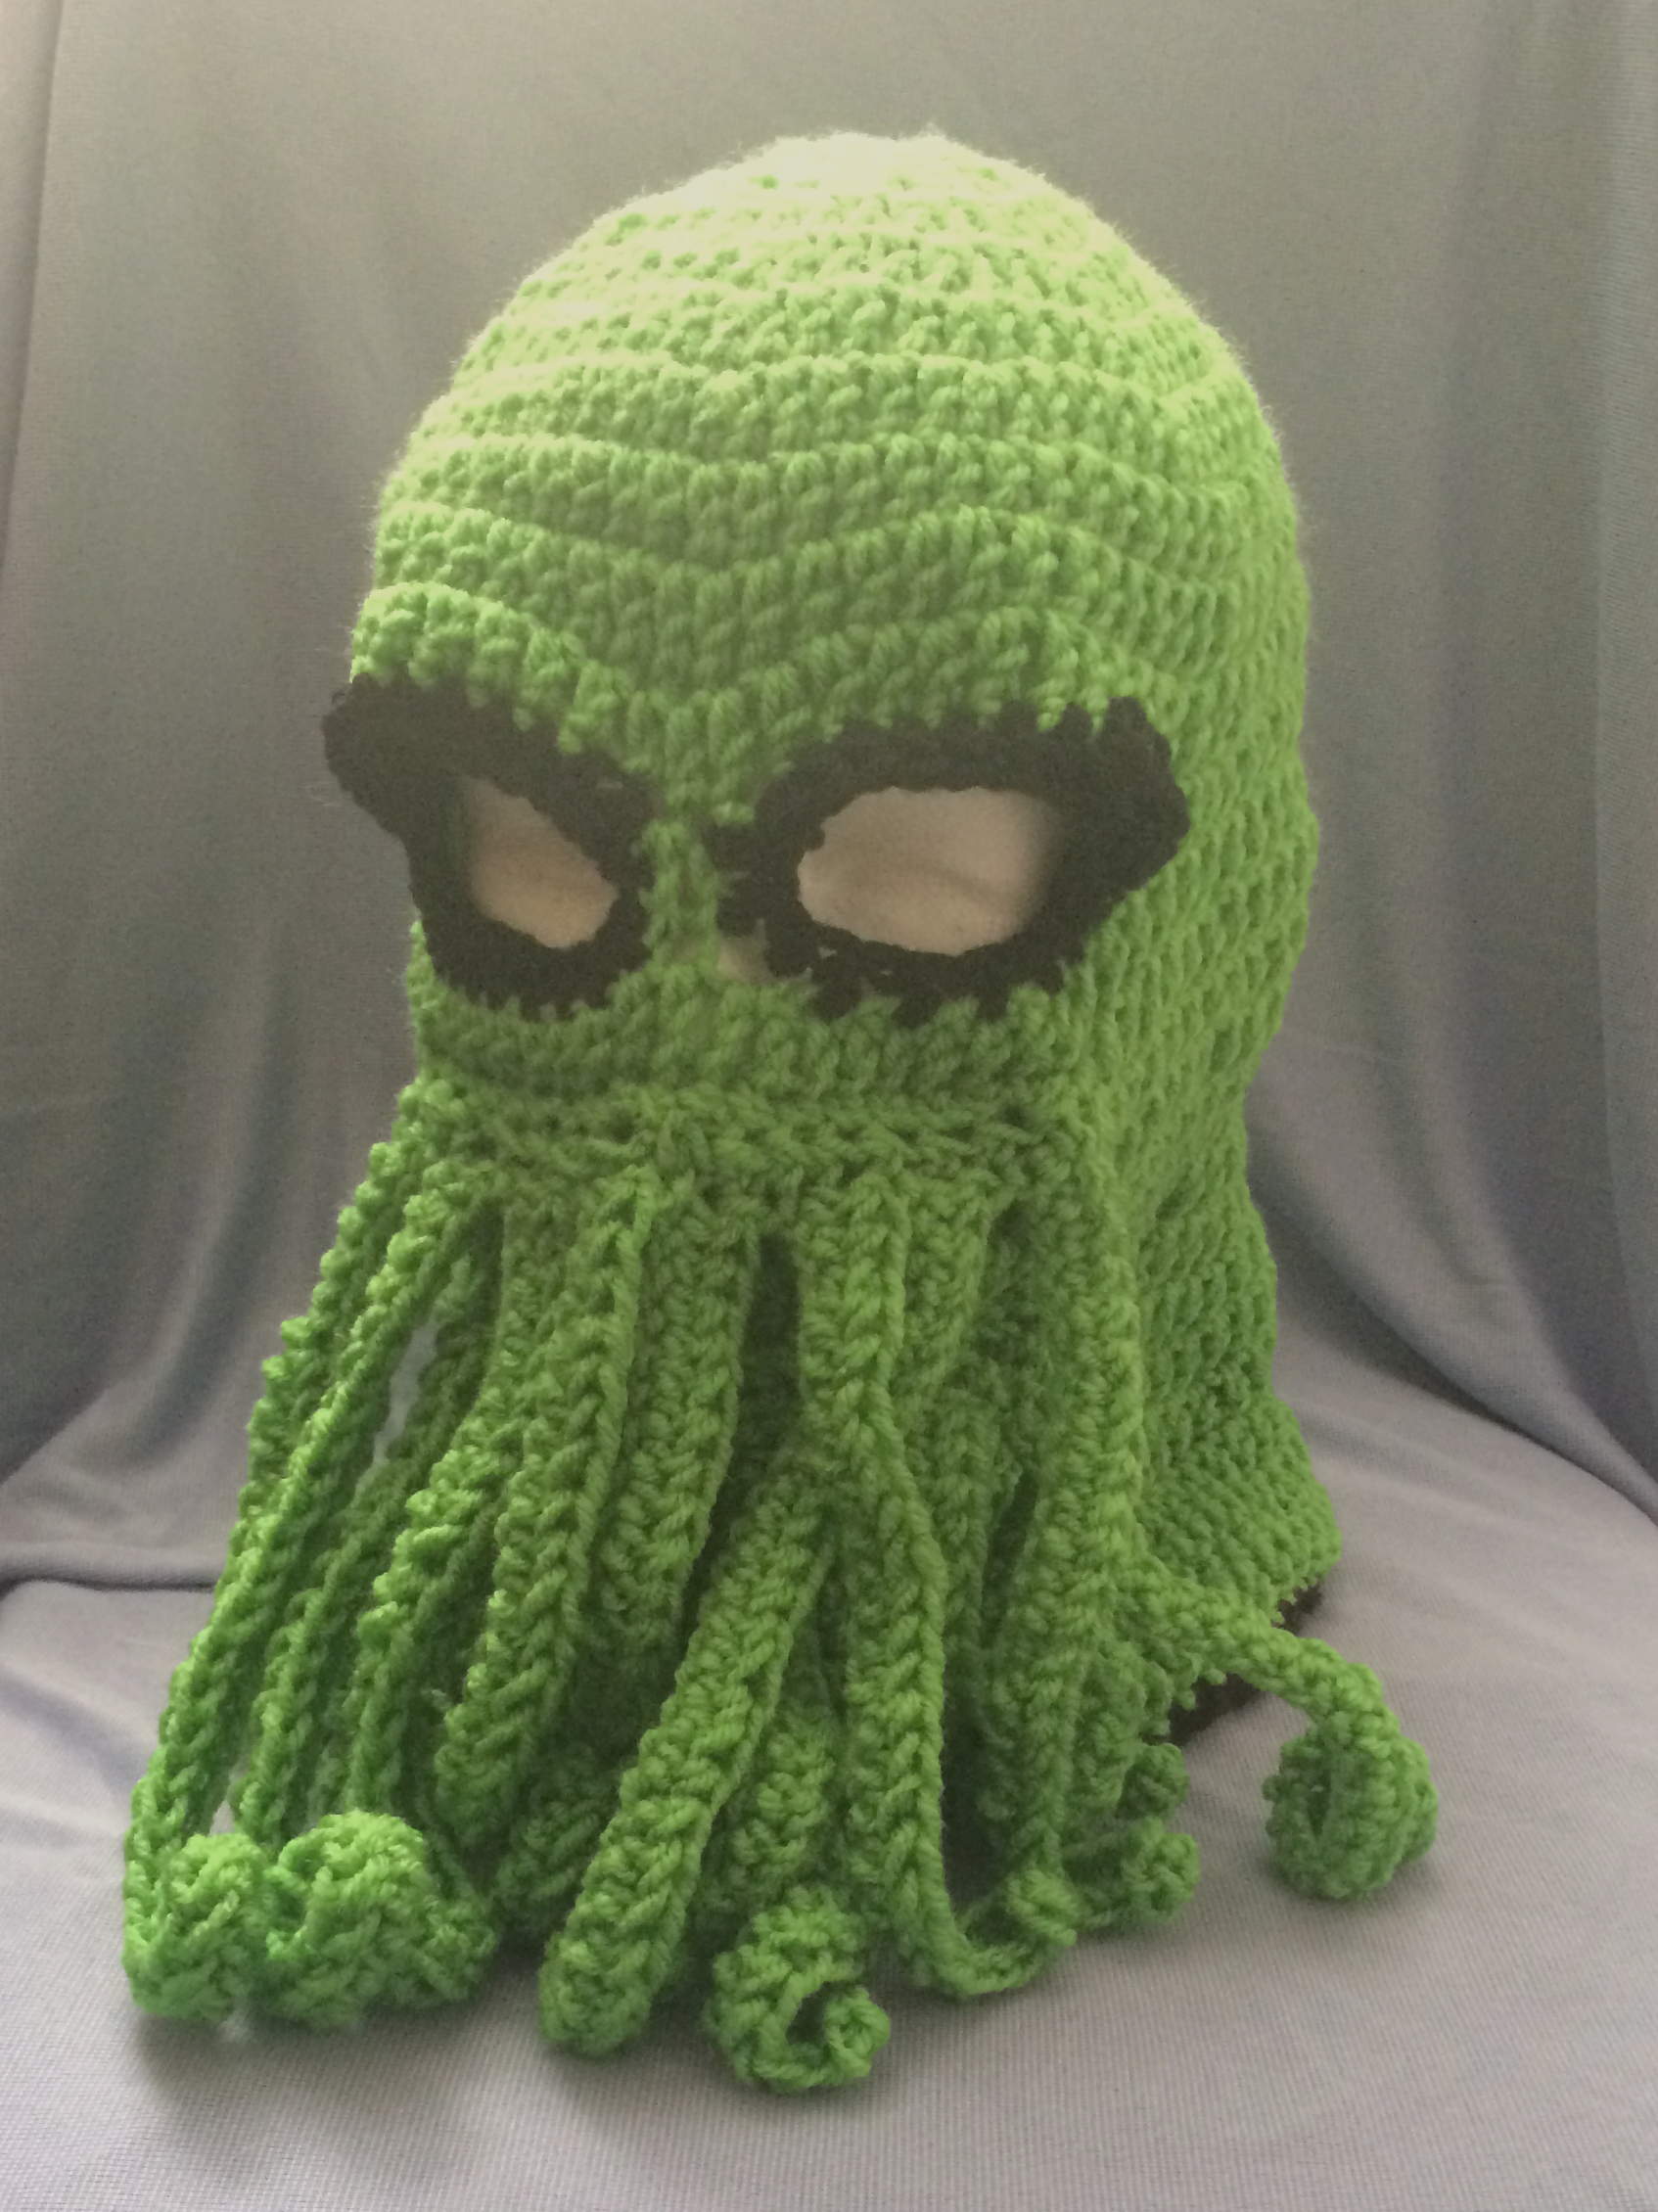 Crochet Cthulhu Mask I Couldnt Find A Pattern That Was Freei Liked